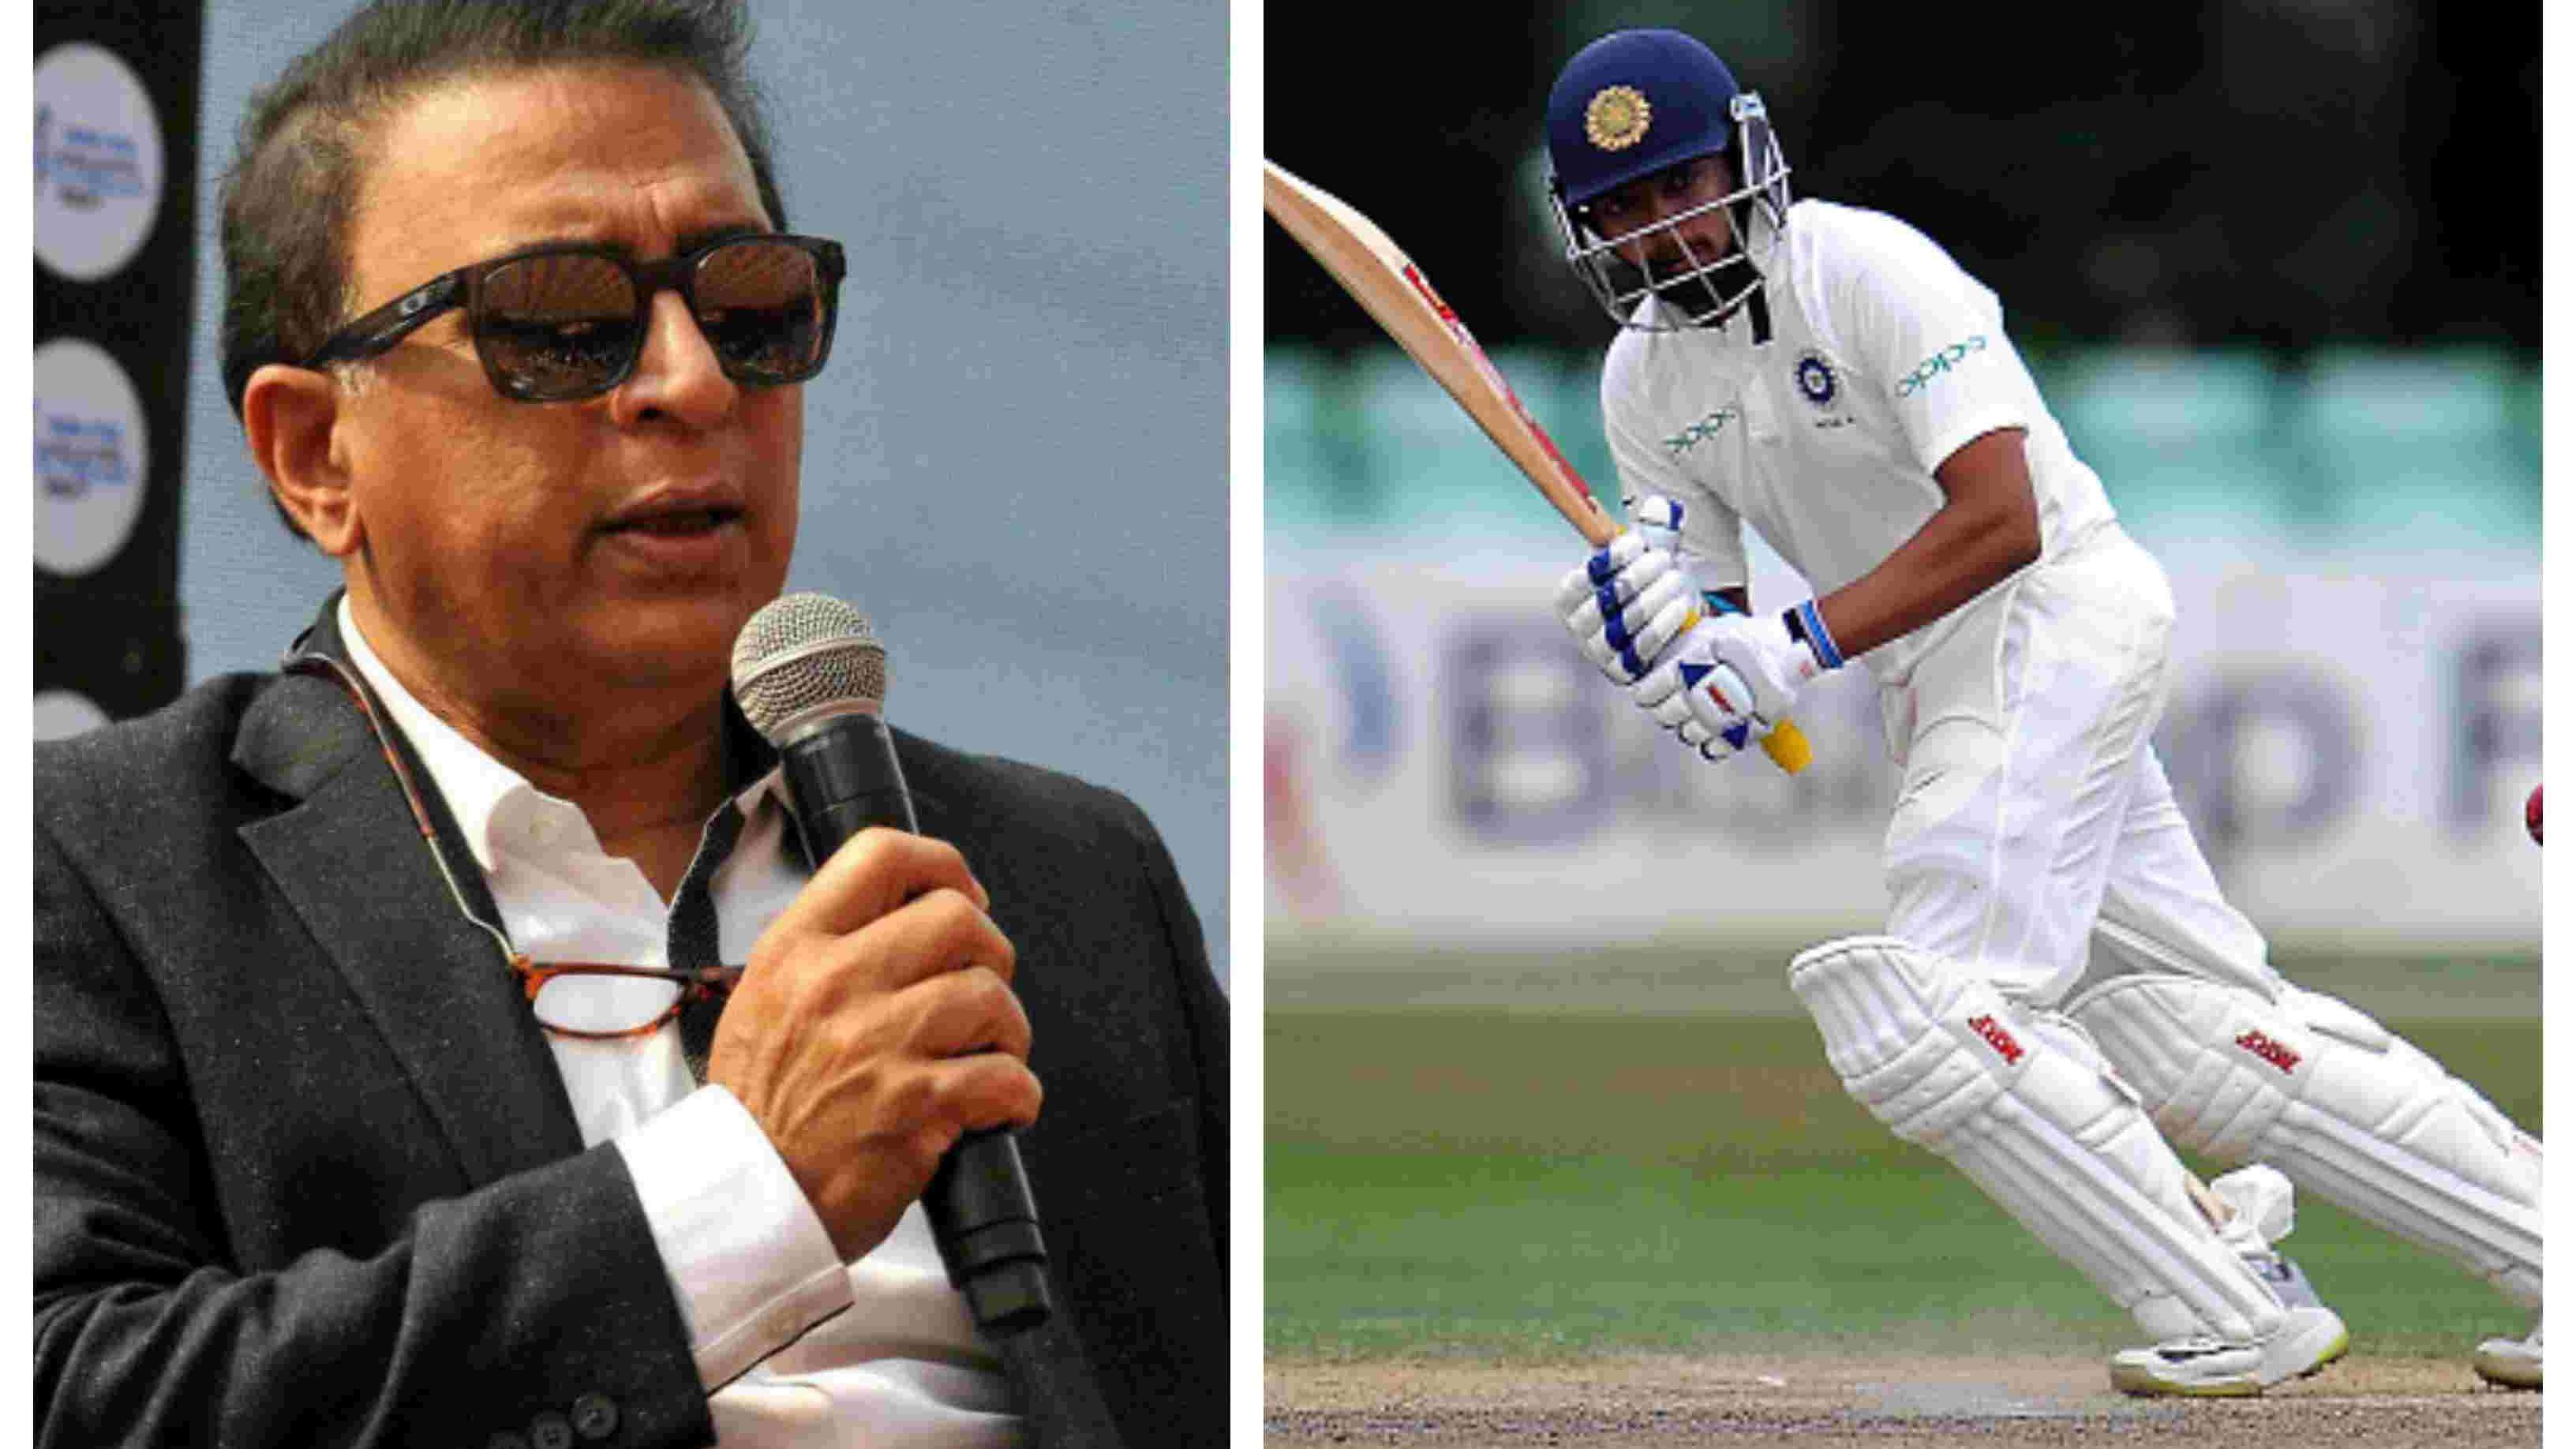 IND v WI 2018: Prithvi Shaw's Test debut will have people on the edge of their seats, says Sunil Gavaskar